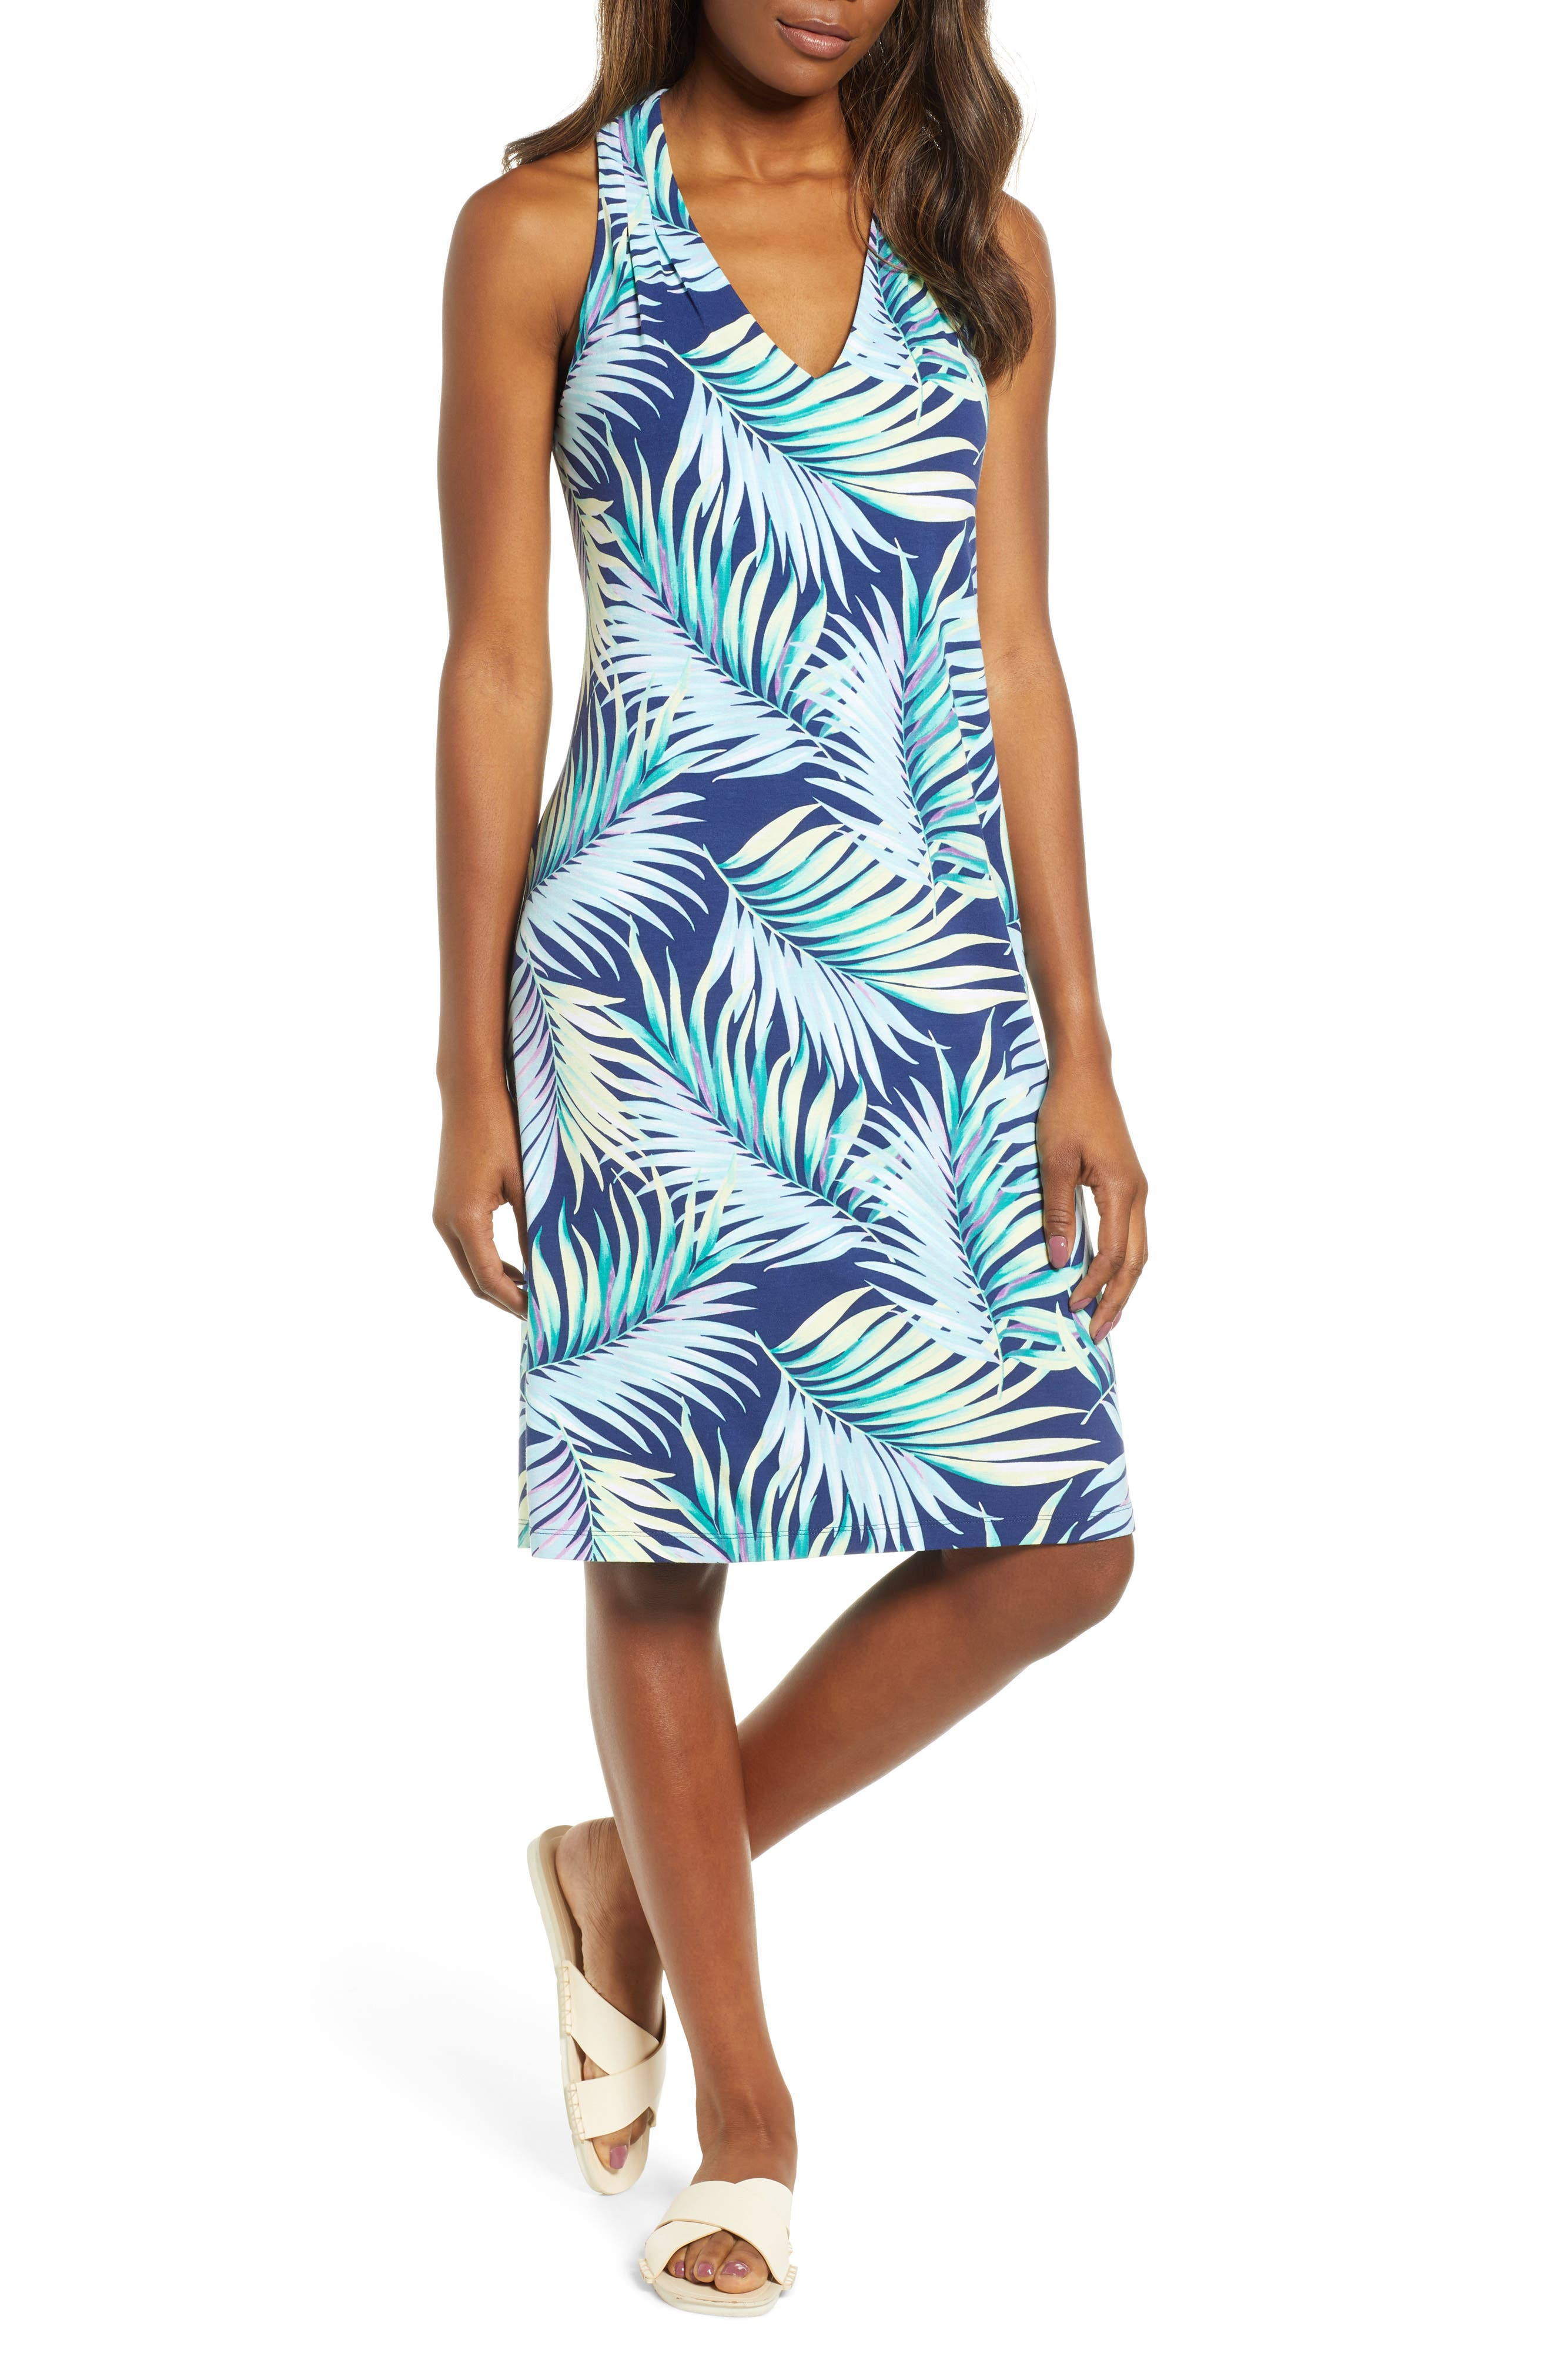 Leinani Leaves Dress,                             Main thumbnail 1, color,                             400